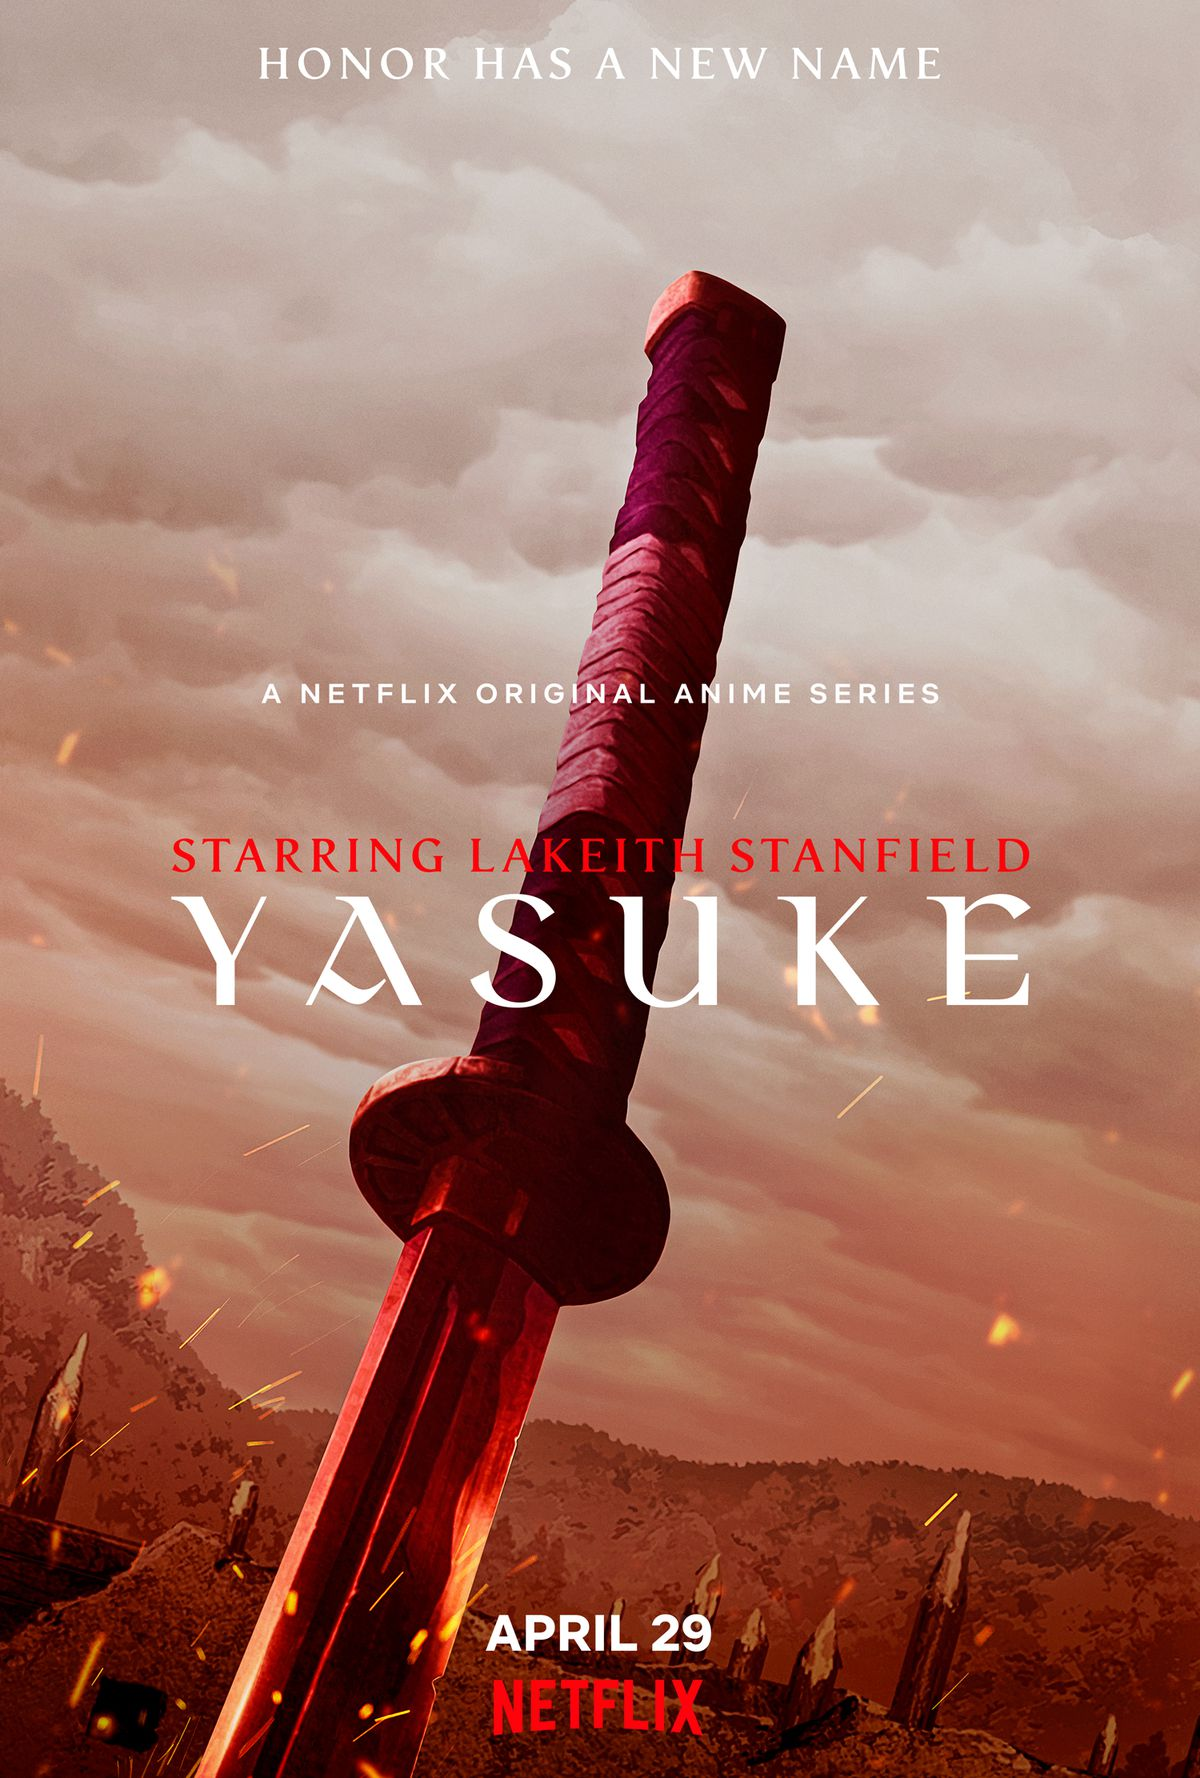 A poster for Netflix's Yasuke anime with a sword stuck into the ground in front of a field